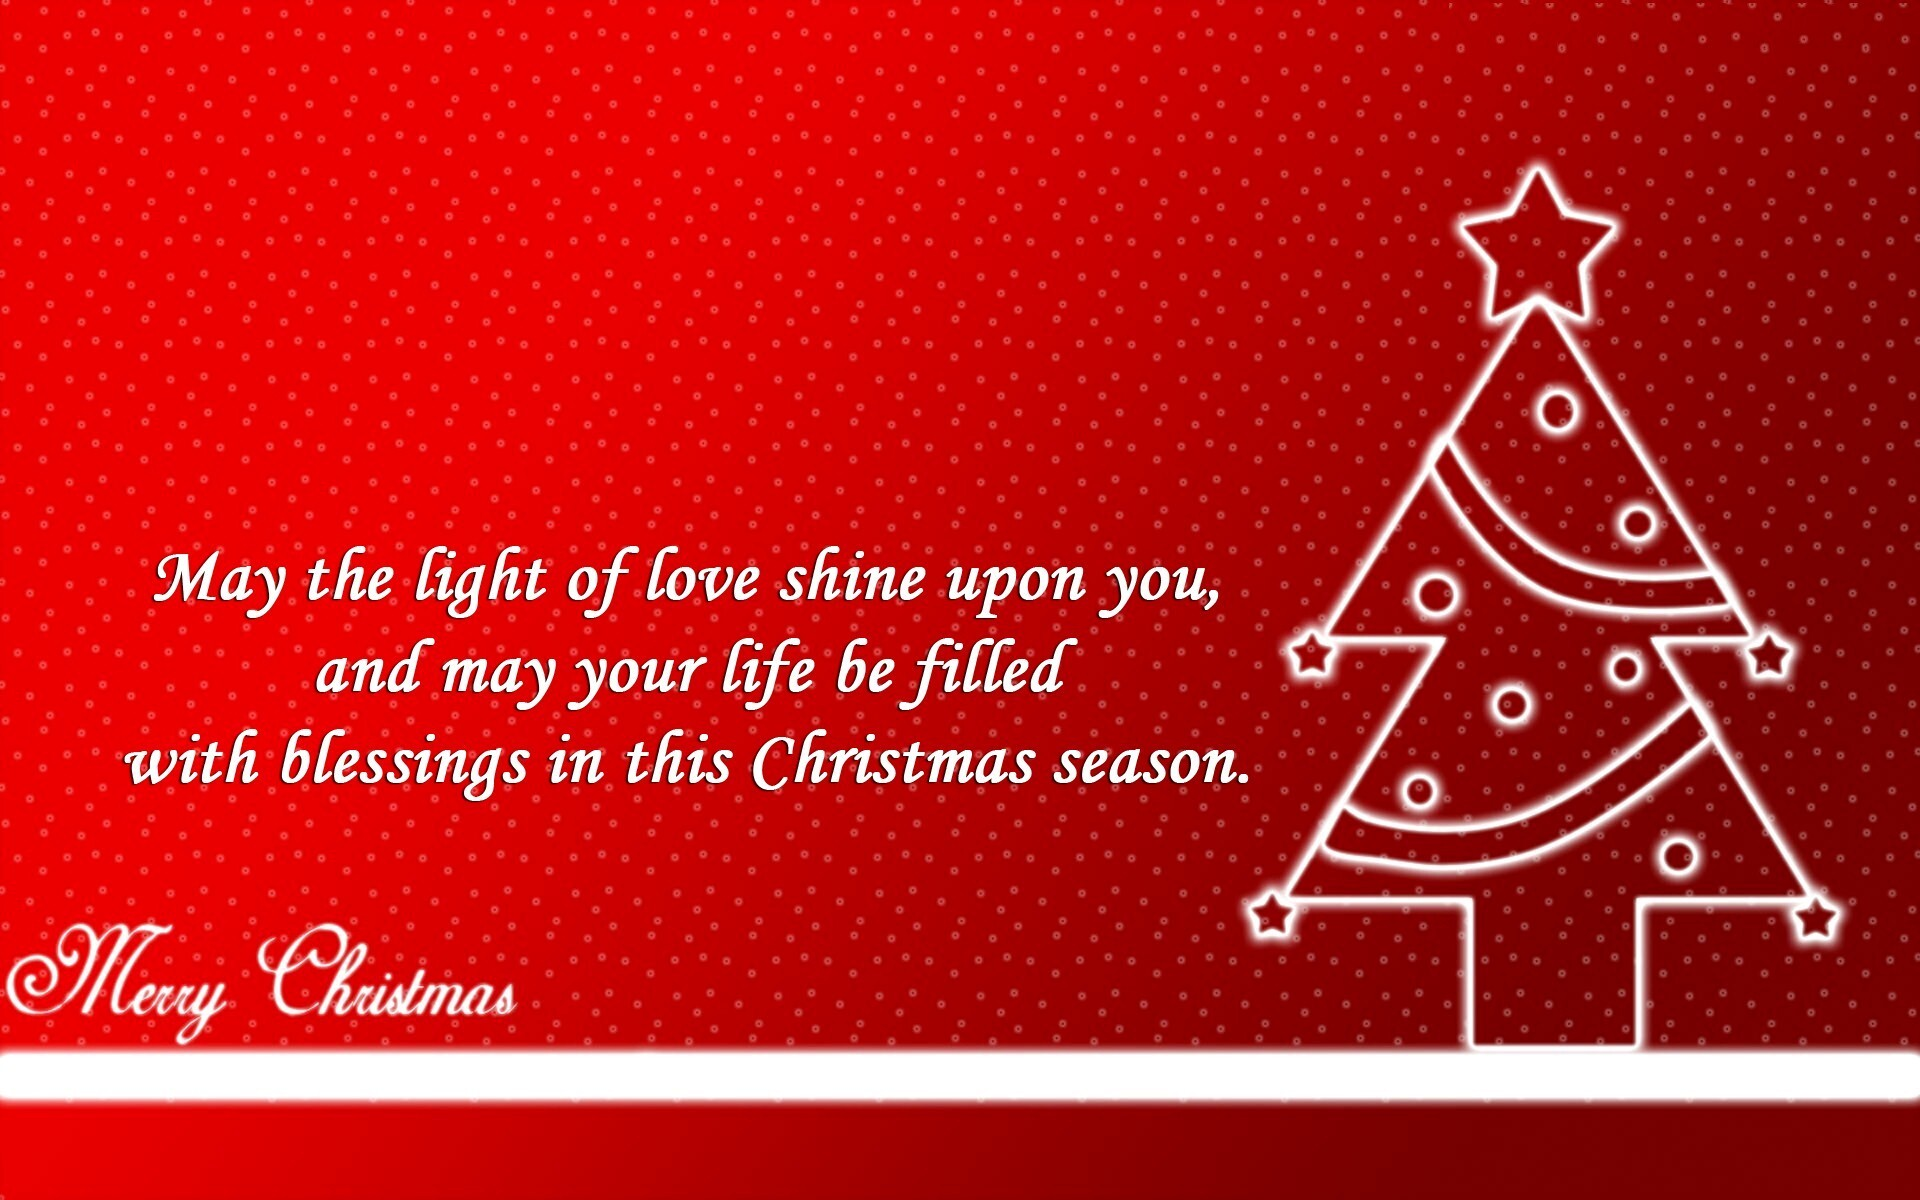 beautiful christmas greeting quote hd desktop wallpapers hd wallpapers - Beautiful Christmas Quotes